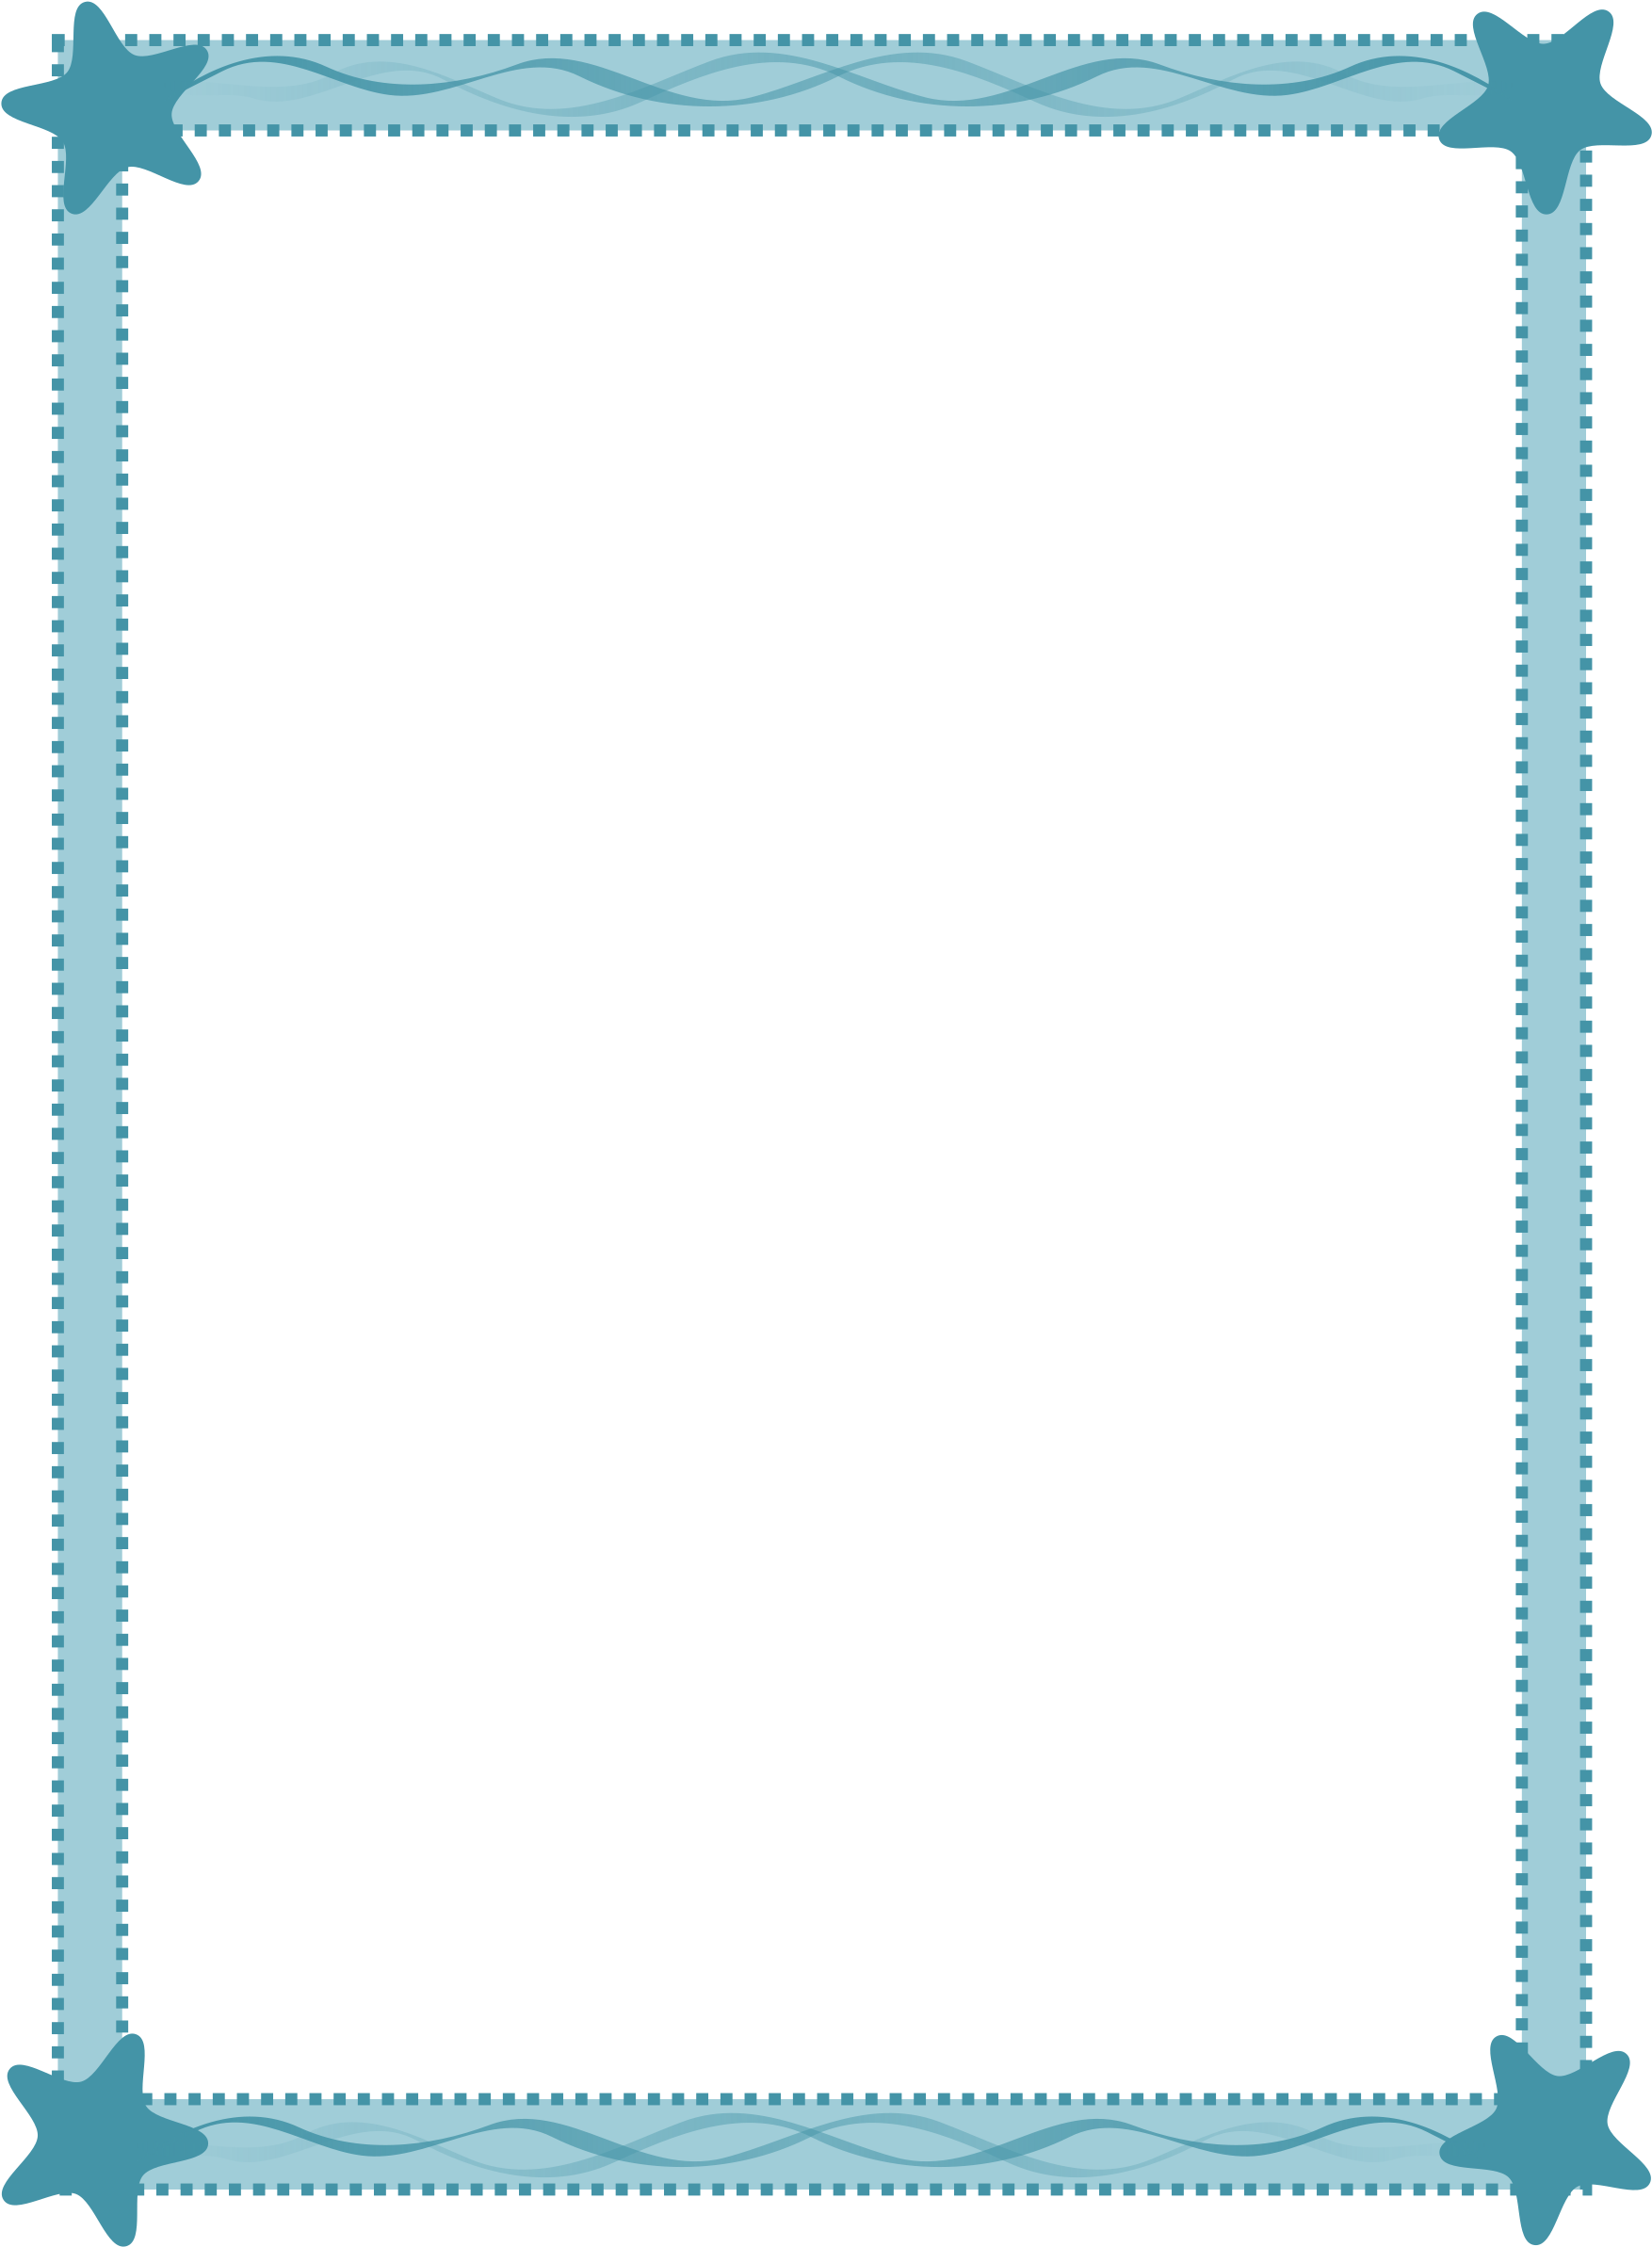 Picture frames sea computer. Ocean clipart frame